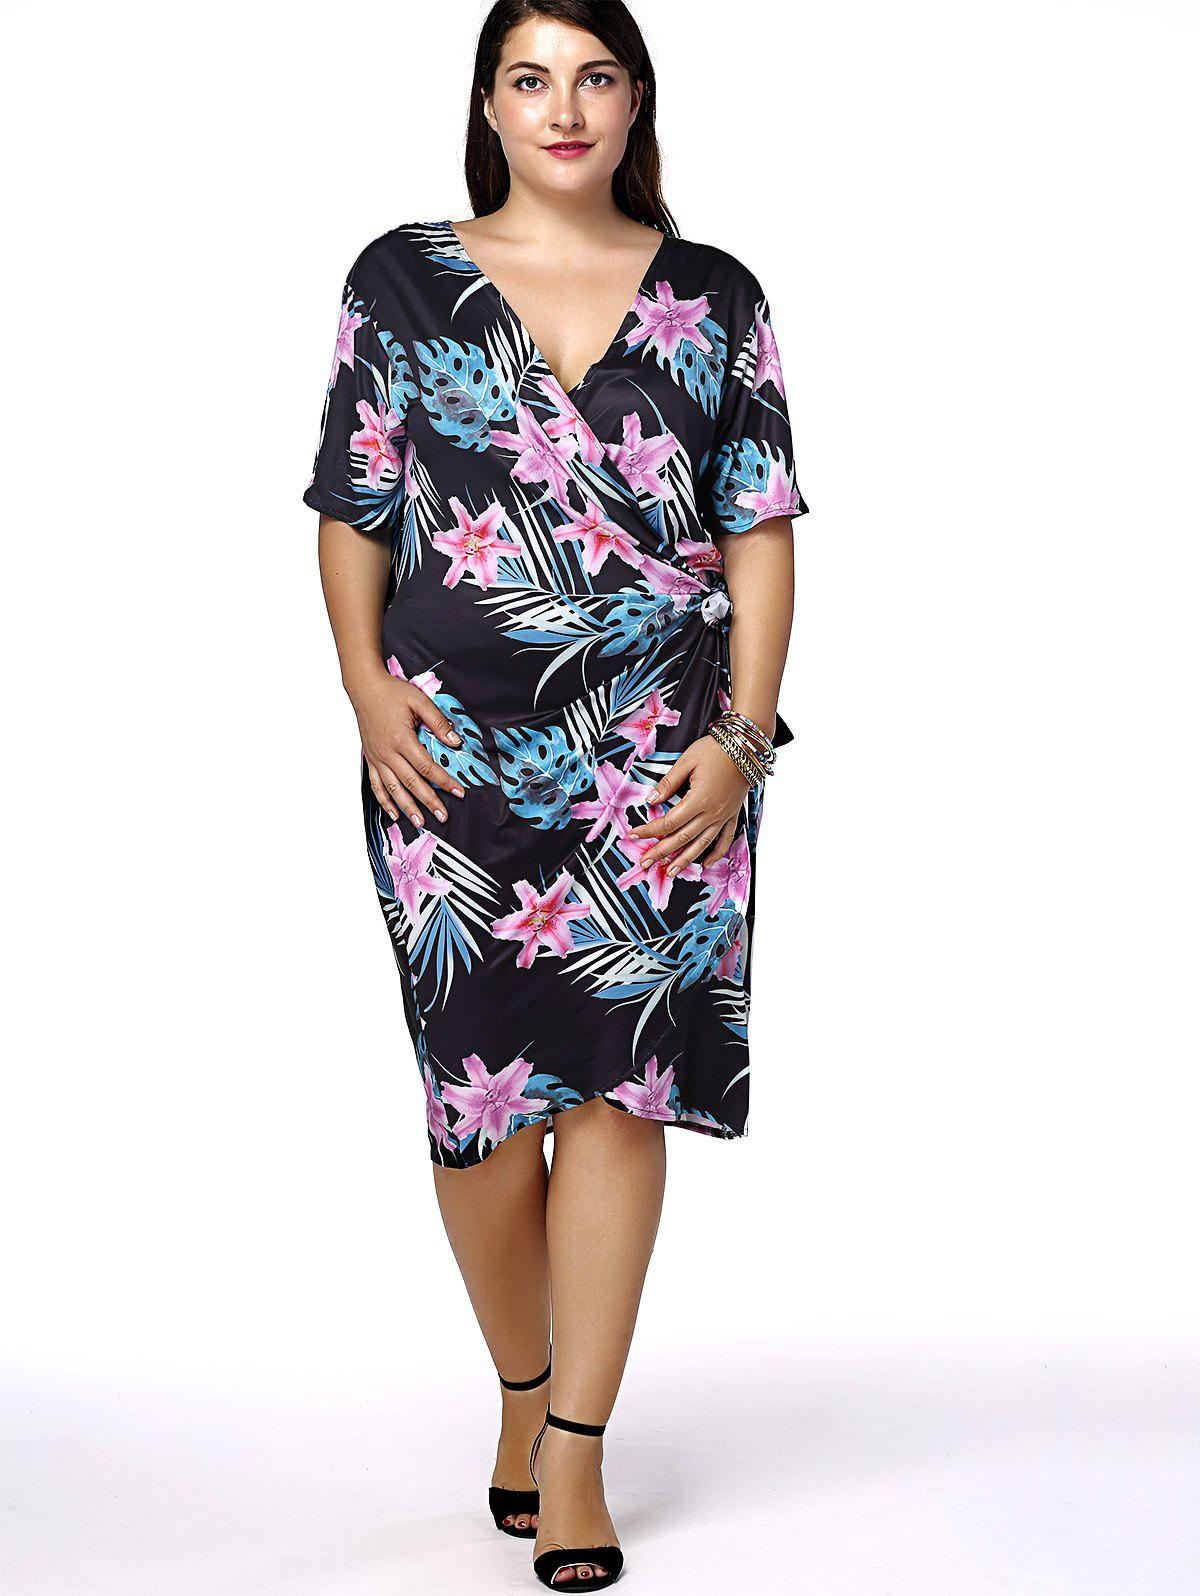 Fashionable Women's Slimming V-Neck Floral Print Plus Size Dress